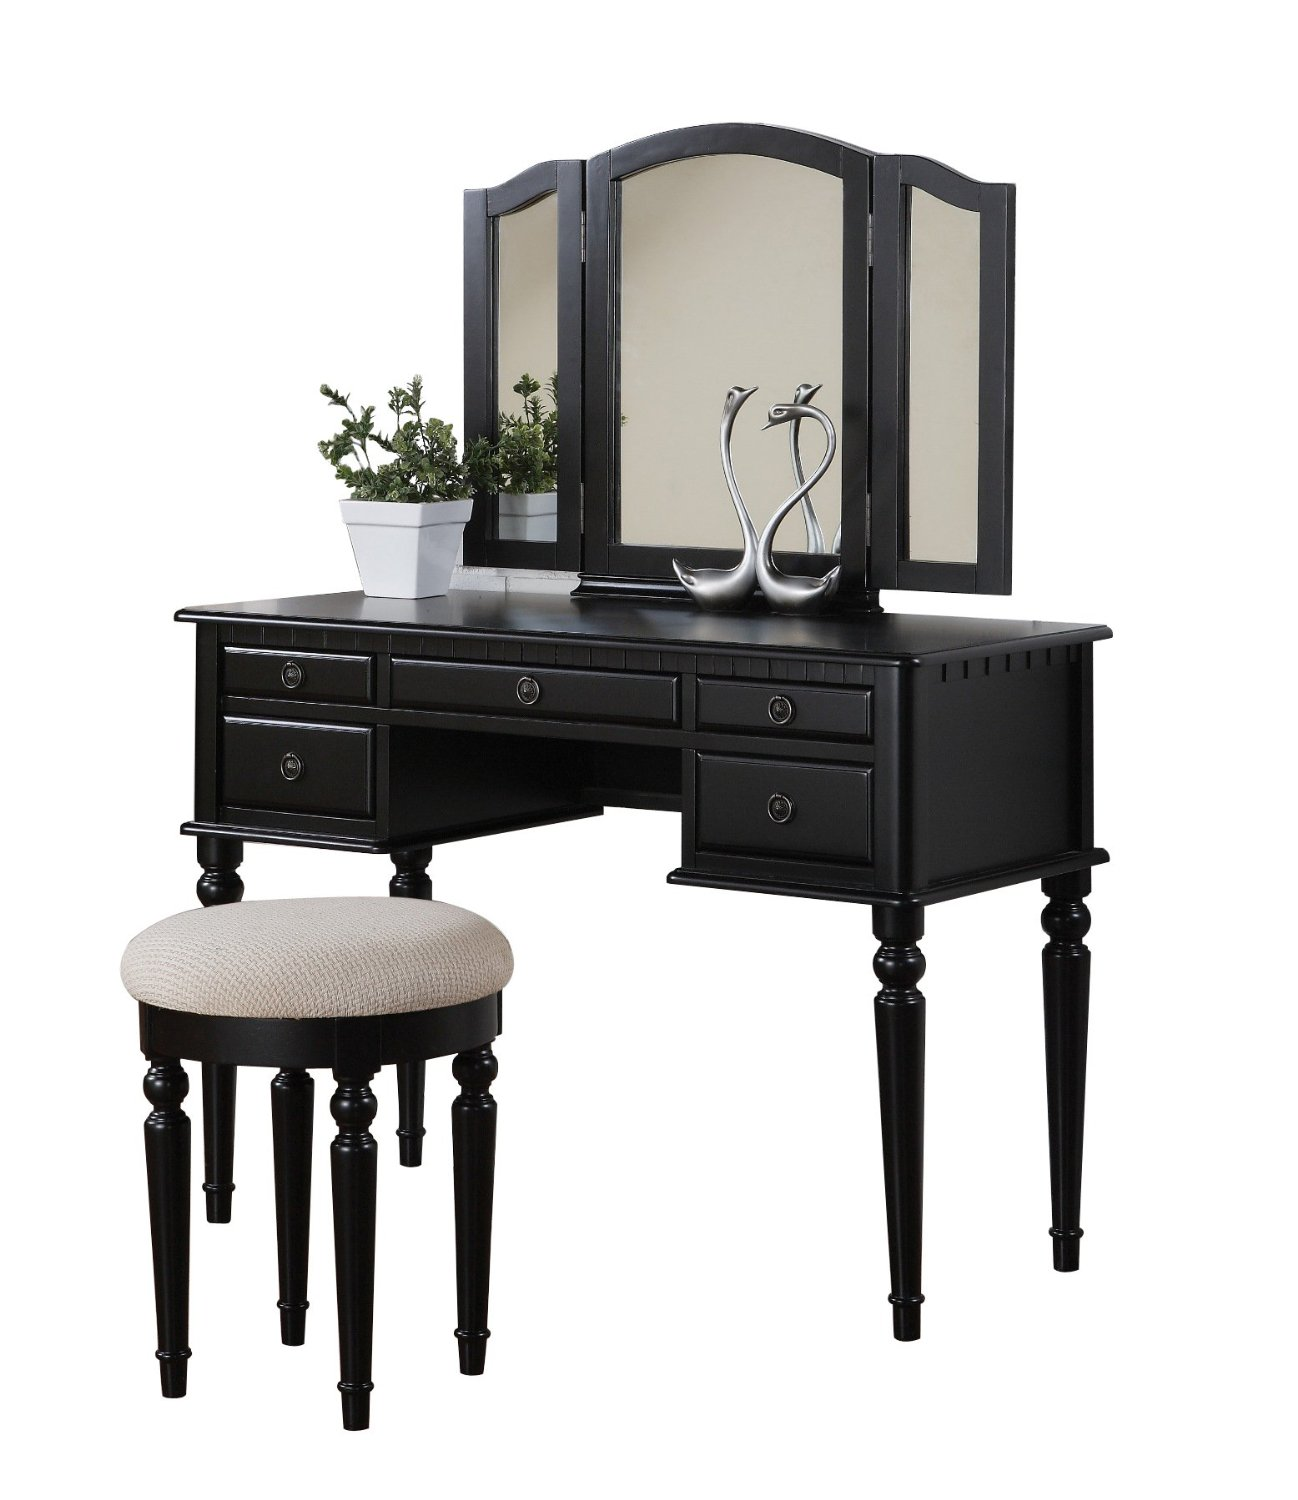 Picture of: Makeup vanity table set black